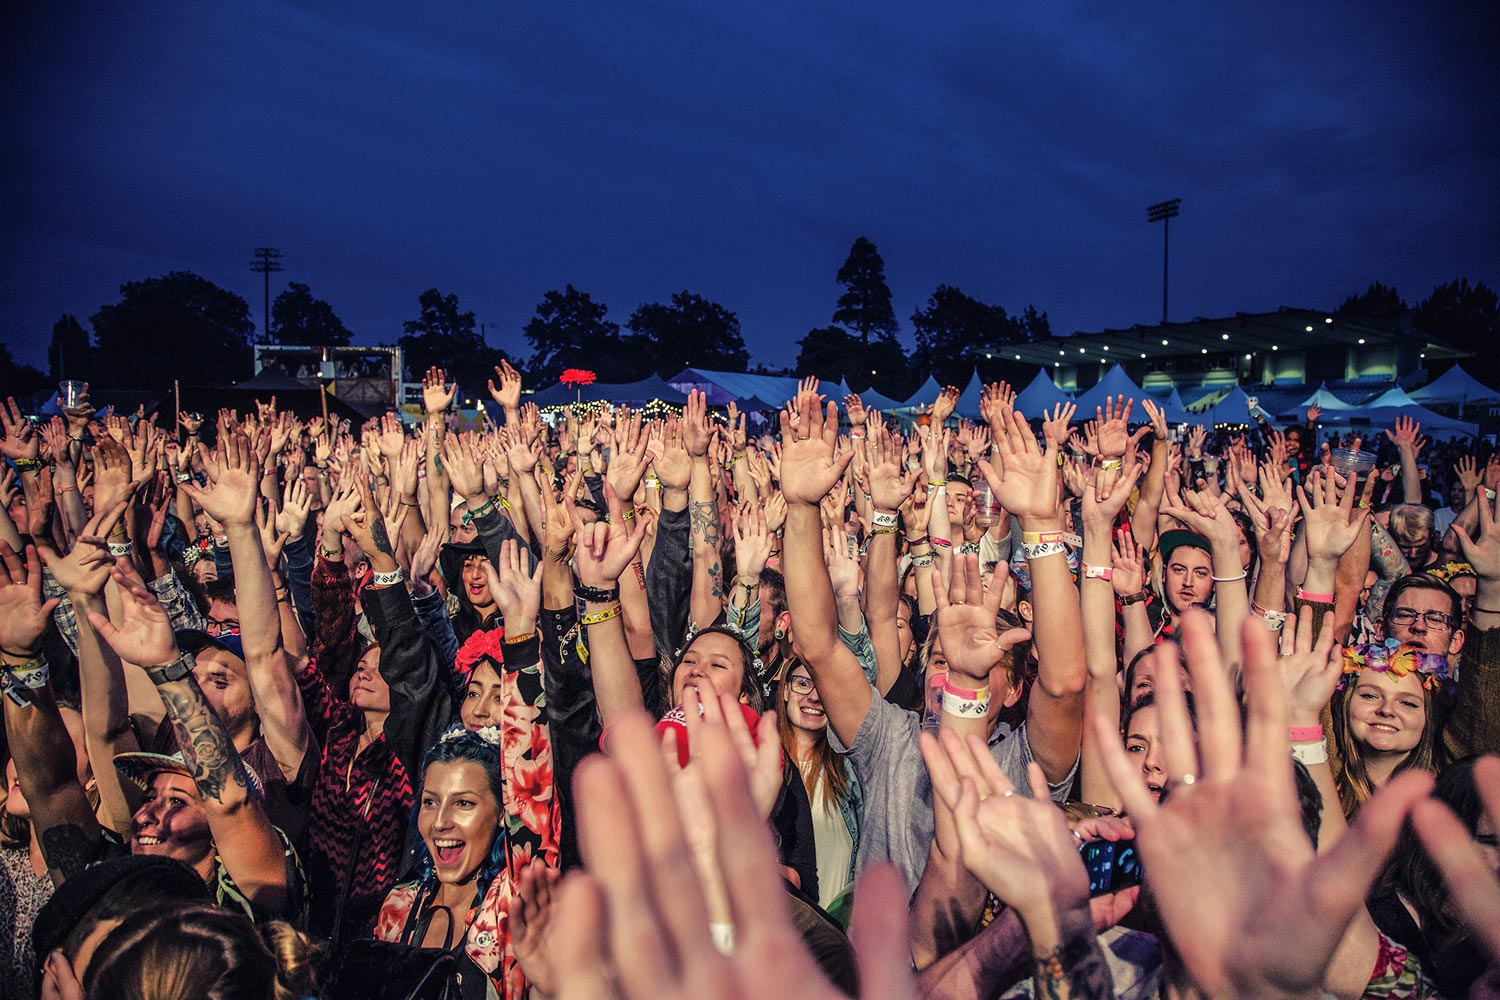 Fans enjoed the Rifflandia show